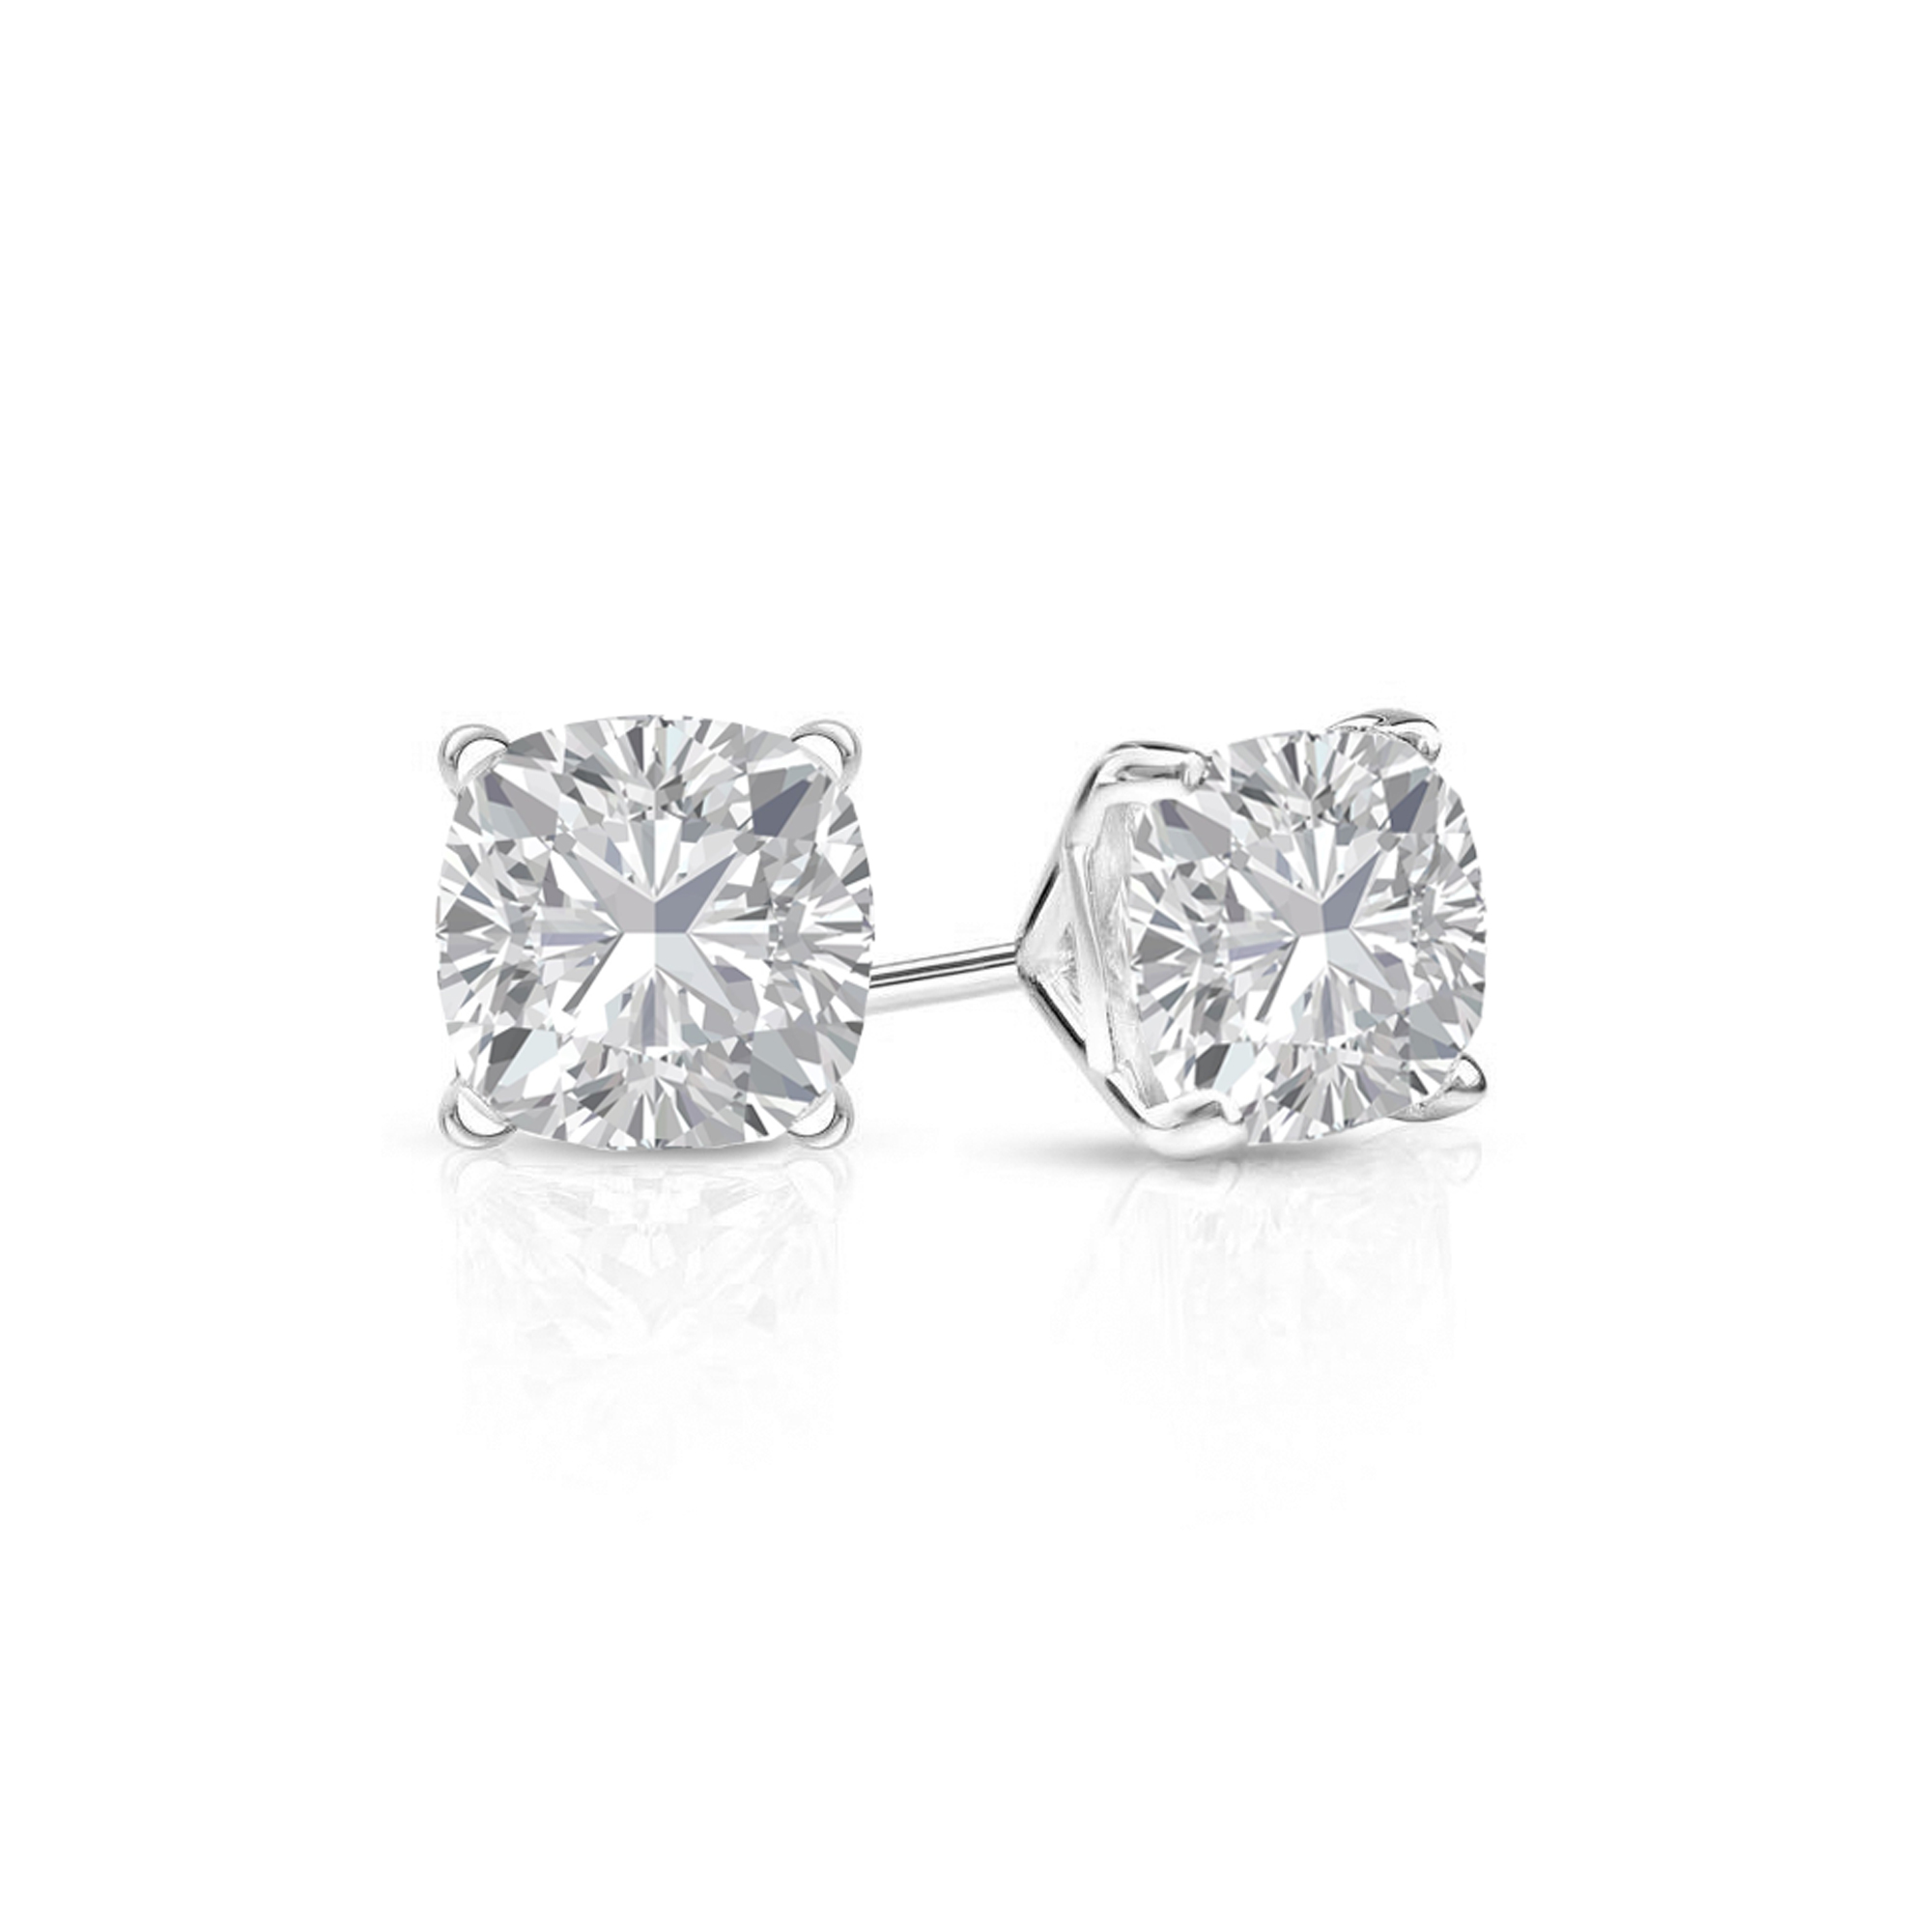 fine white moissanite jewellery heart moissy prong earrings shaped products